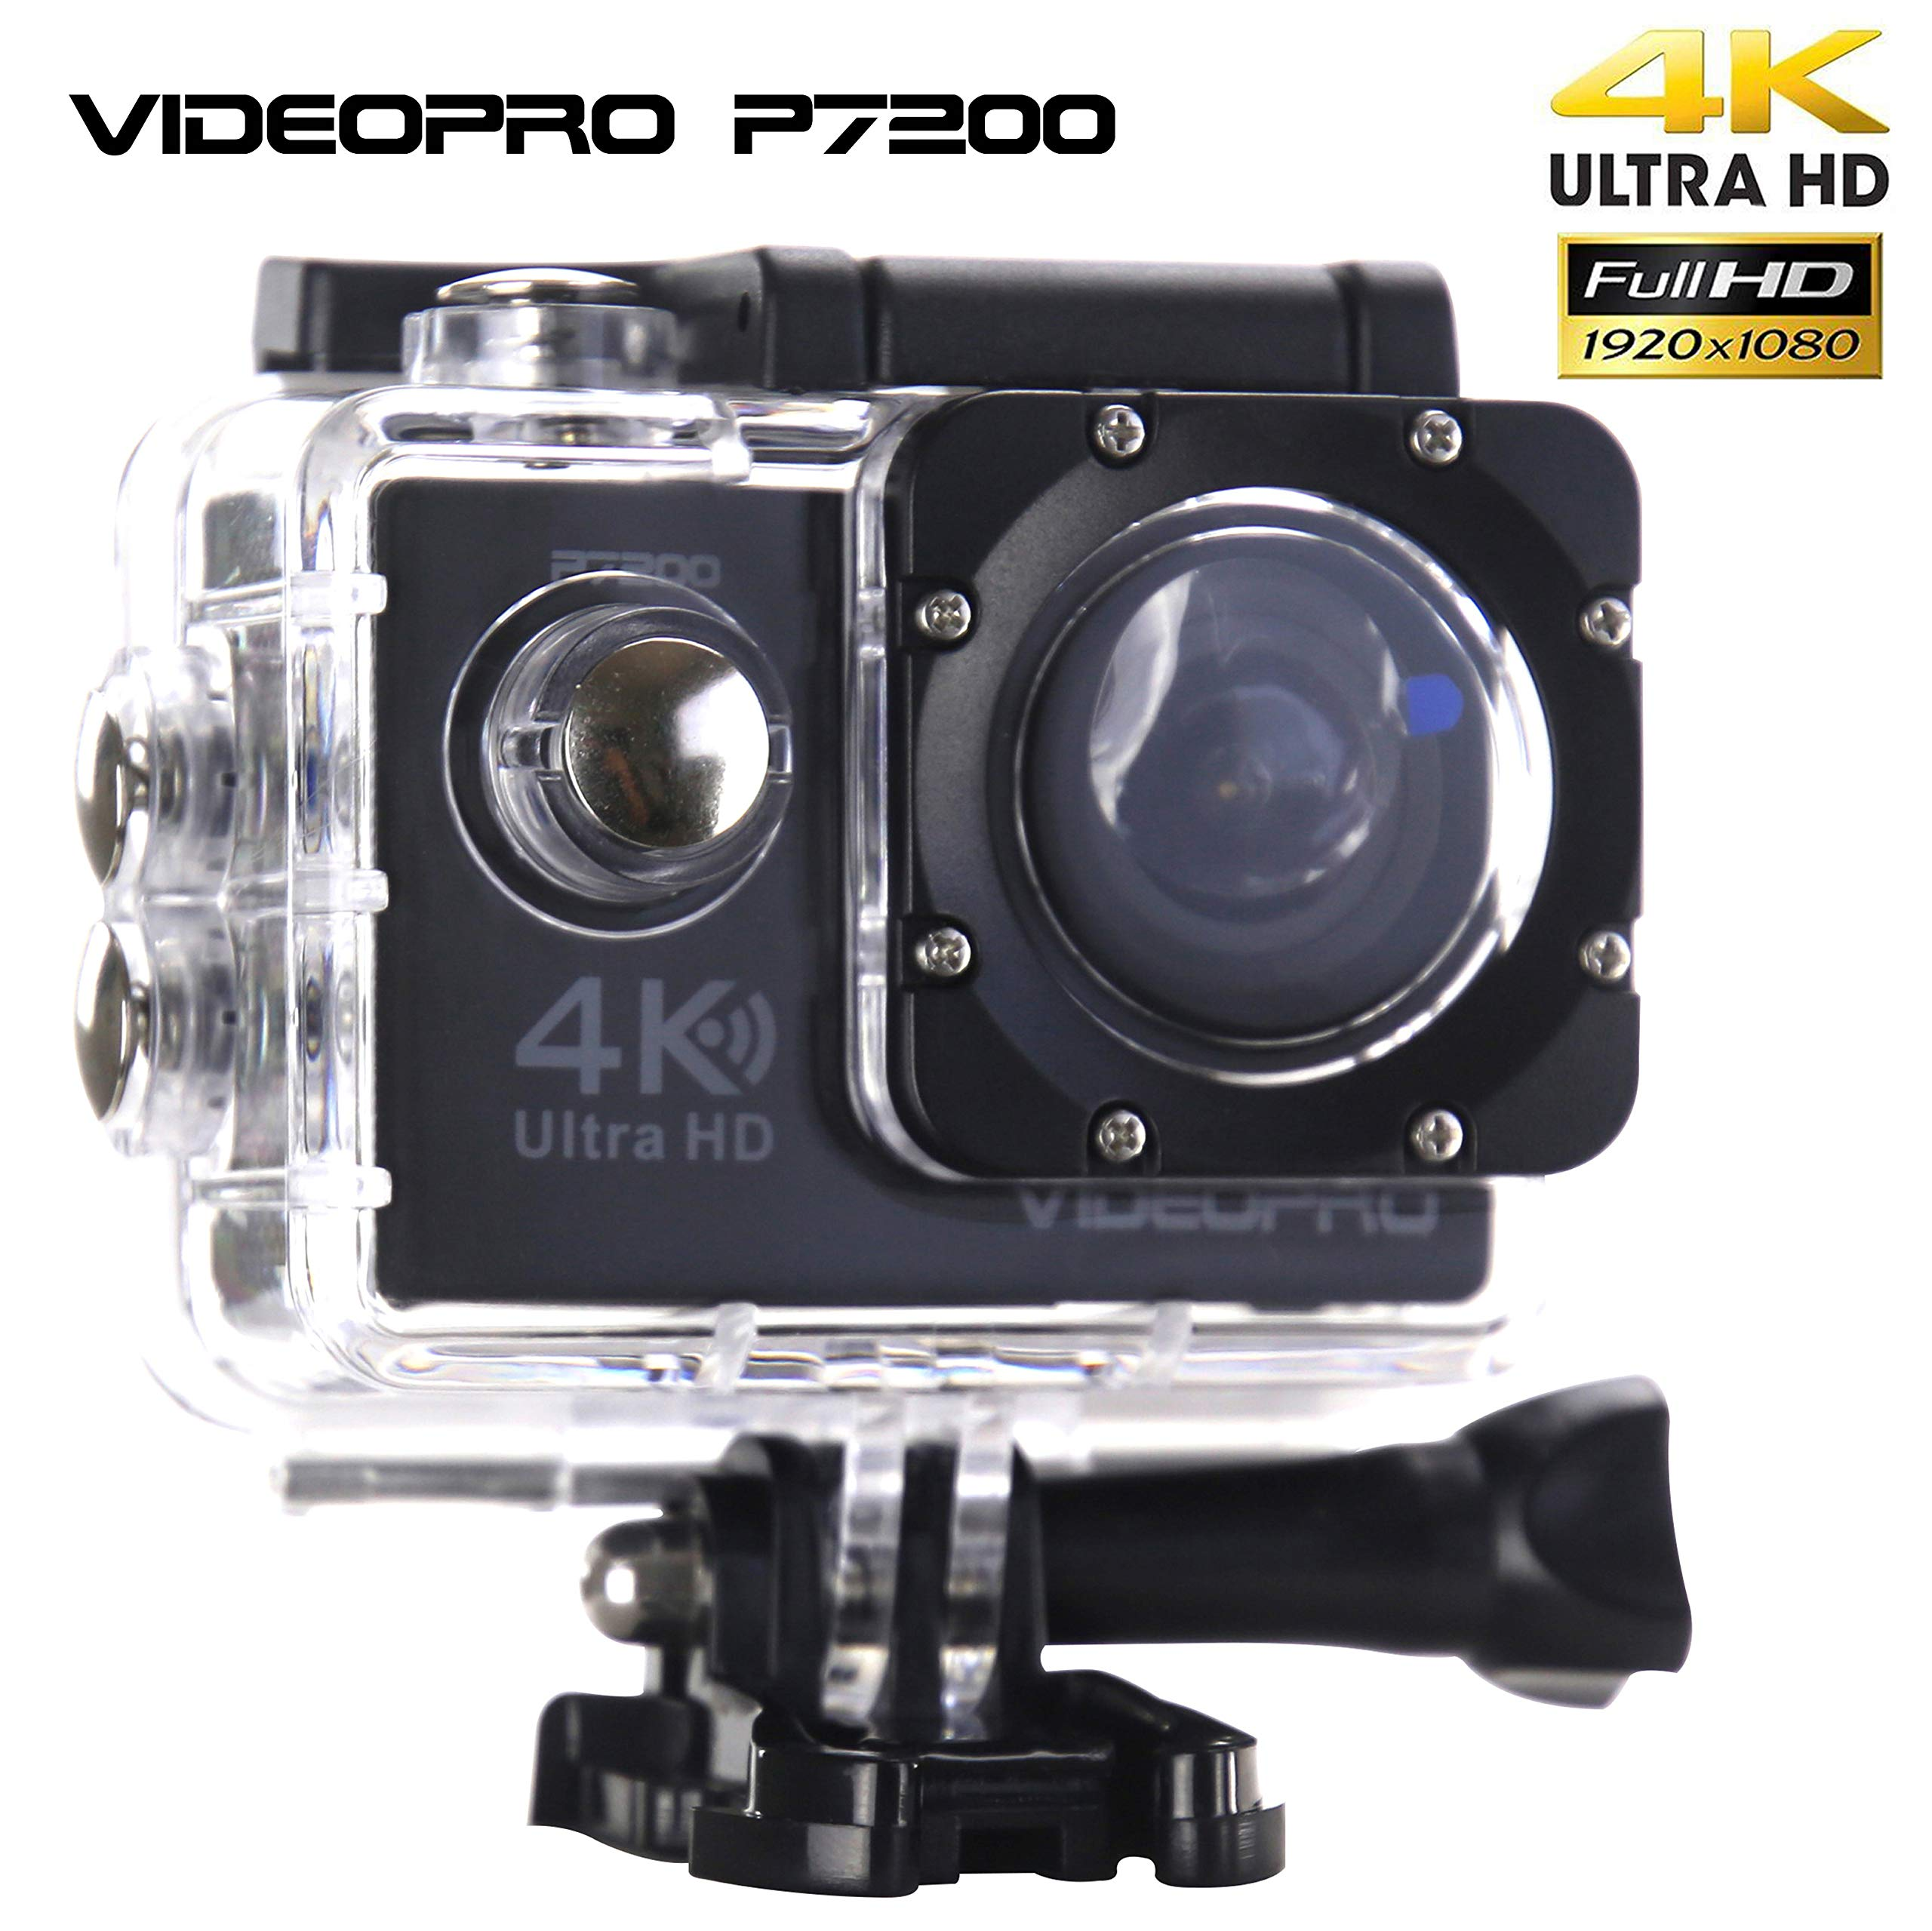 VIDEOPRO 水下HD Camera 4K WiFi Sports Camera Waterproof DV Camcorder 16MP 2 inch 液晶显示 黑色